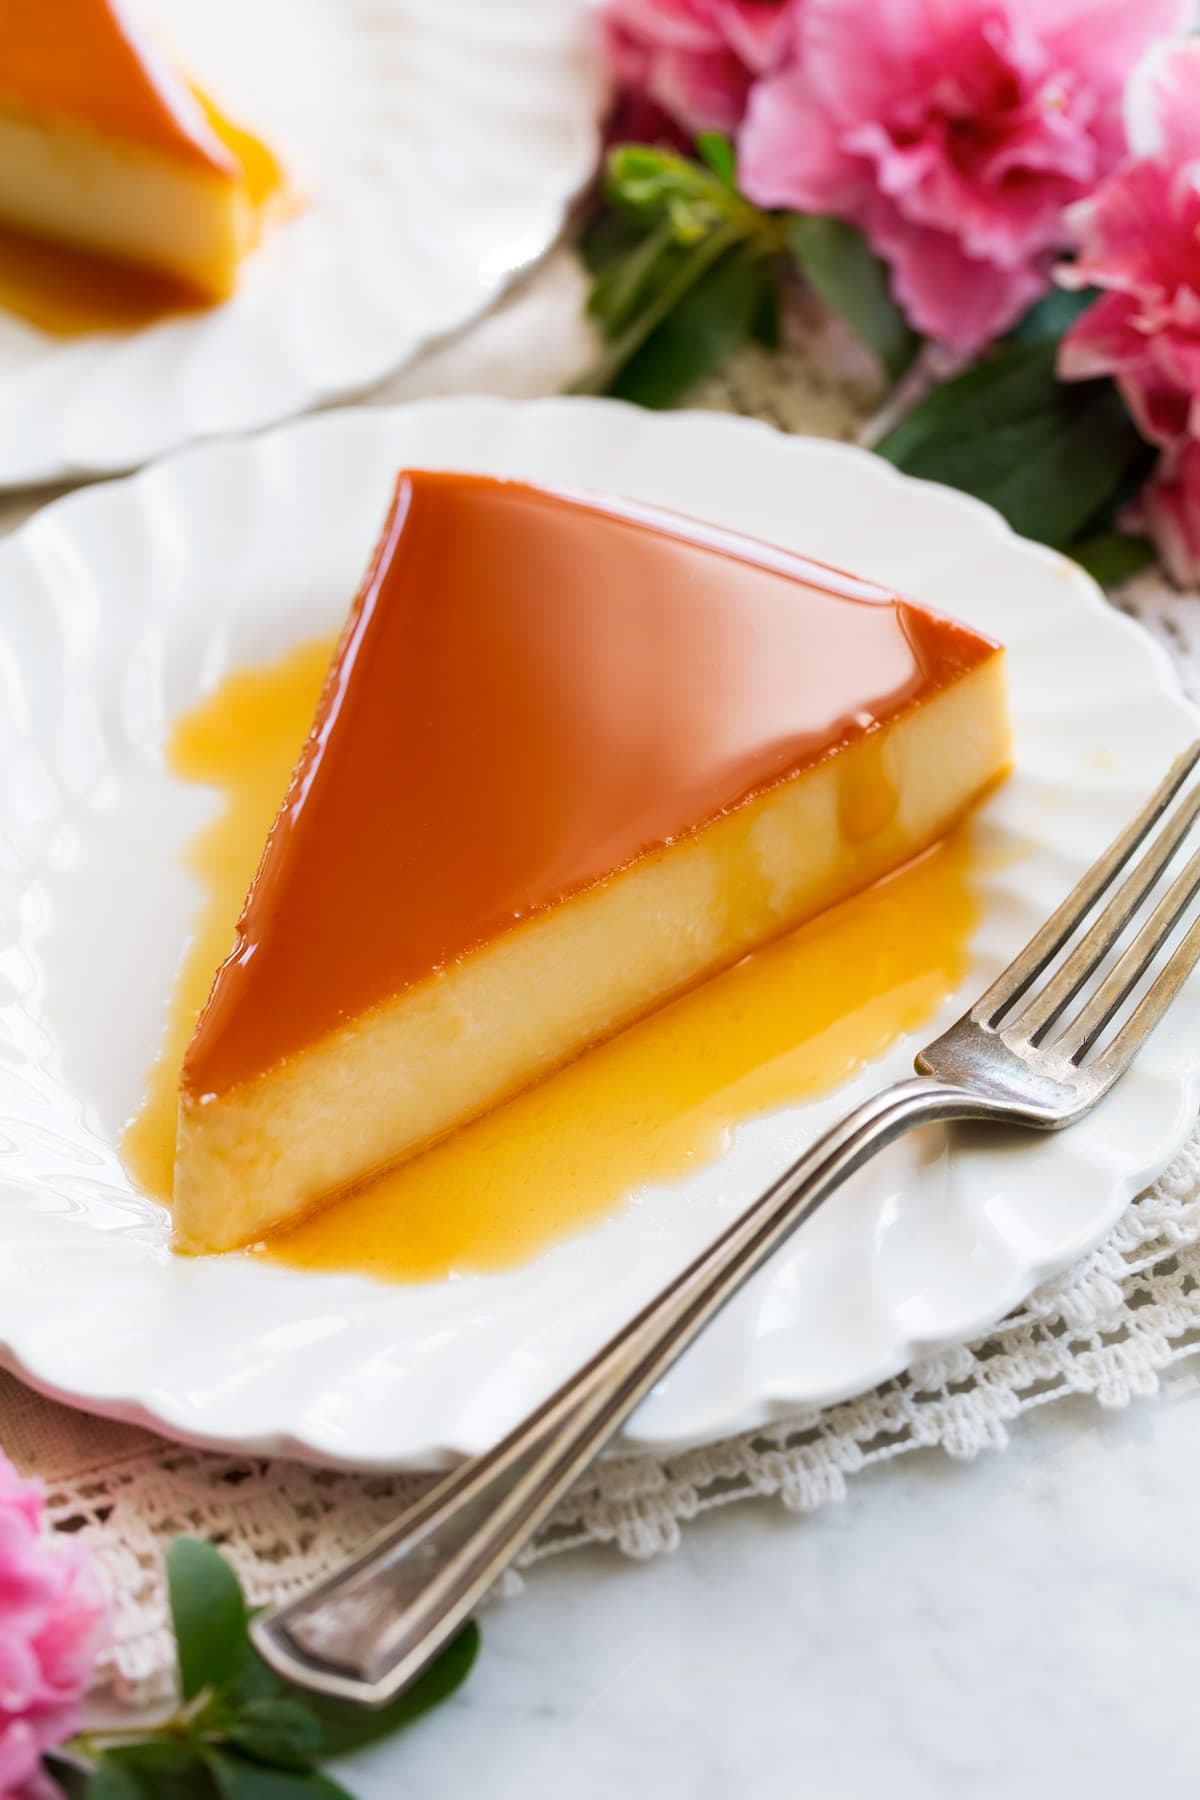 Image of one slice of flan.